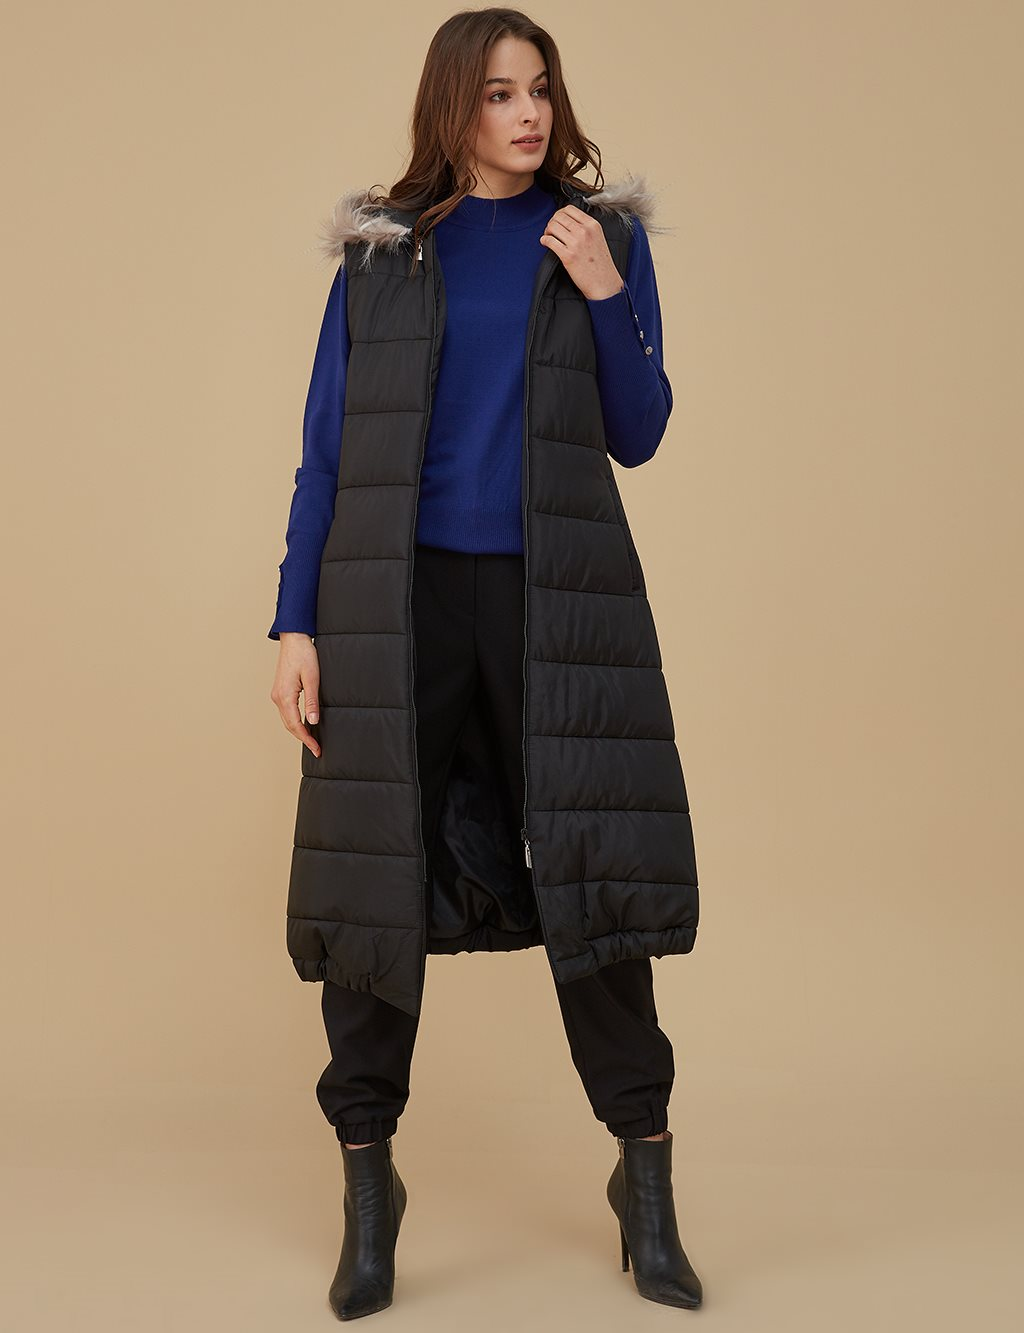 Vest With Furry Hood Detailed A9 10074 Black